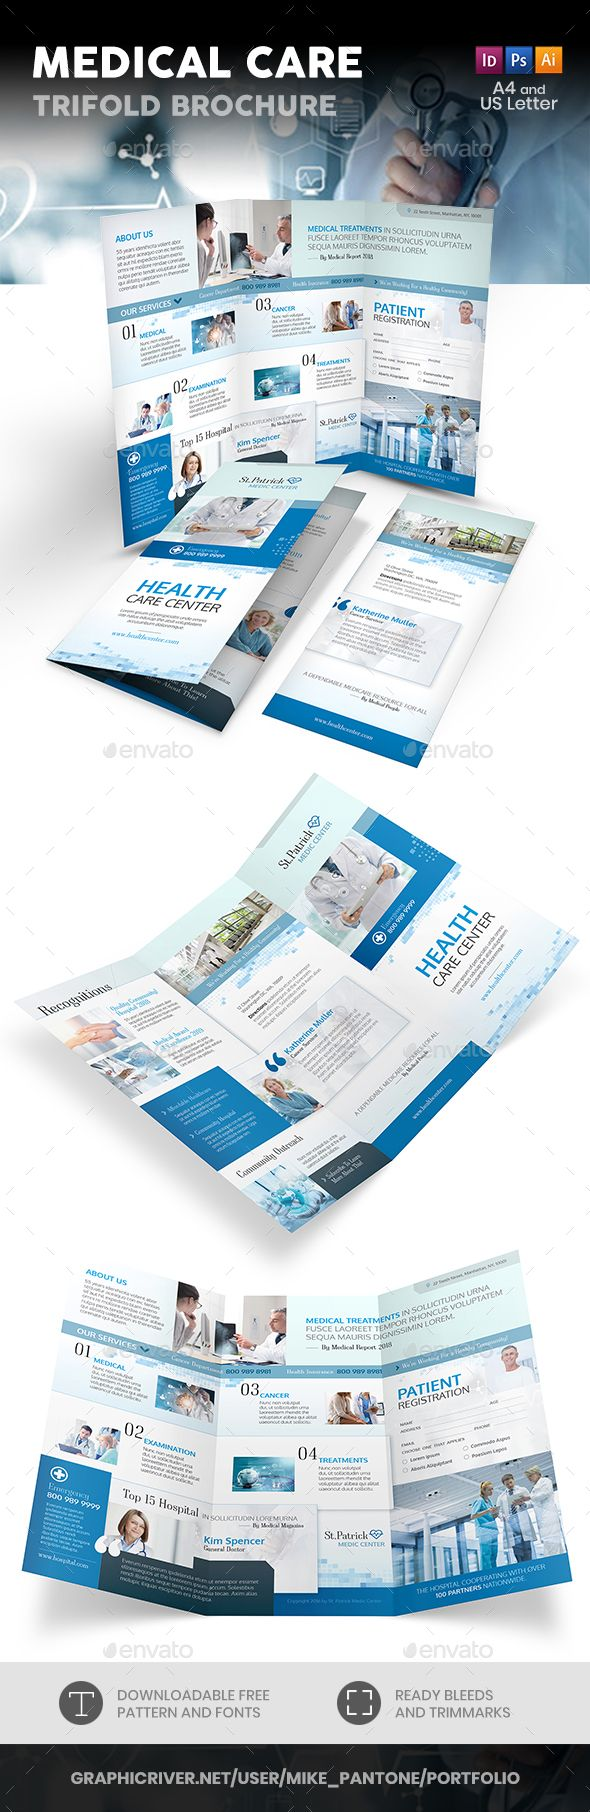 Medical Care Trifold Brochure - Informational Brochures  Download here : graphic...